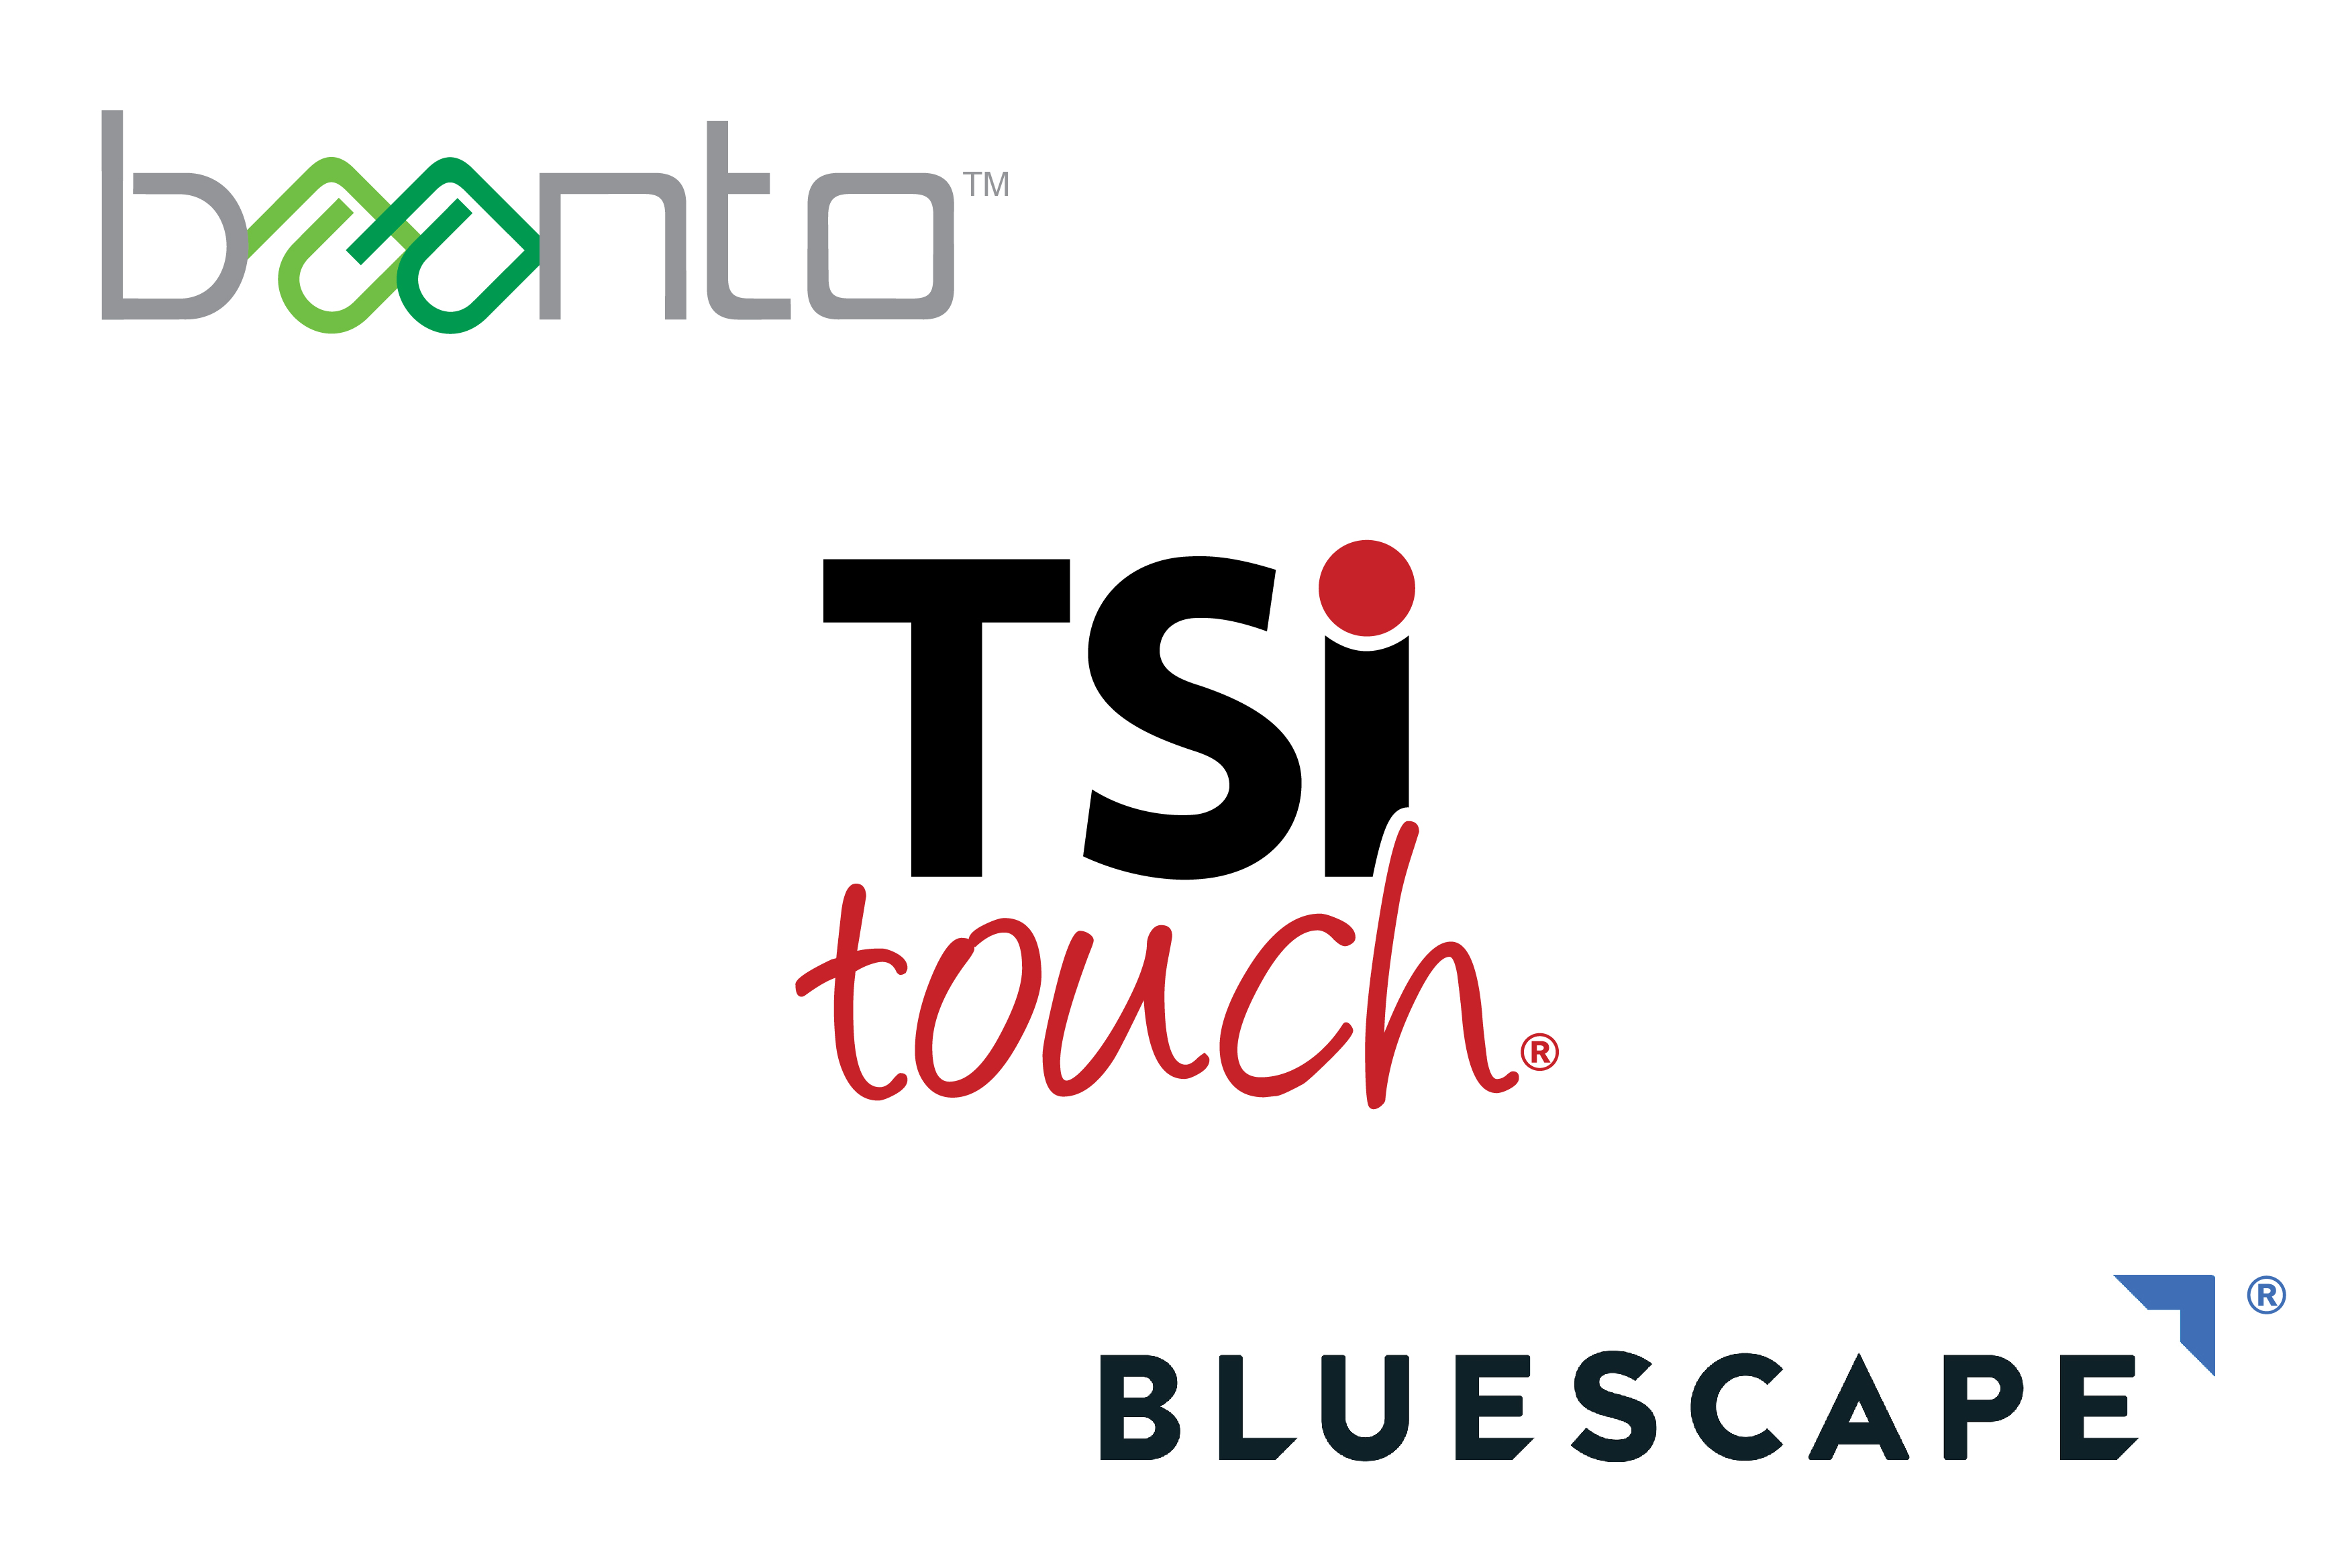 TSItouch, Baanto, and Bluescape logos